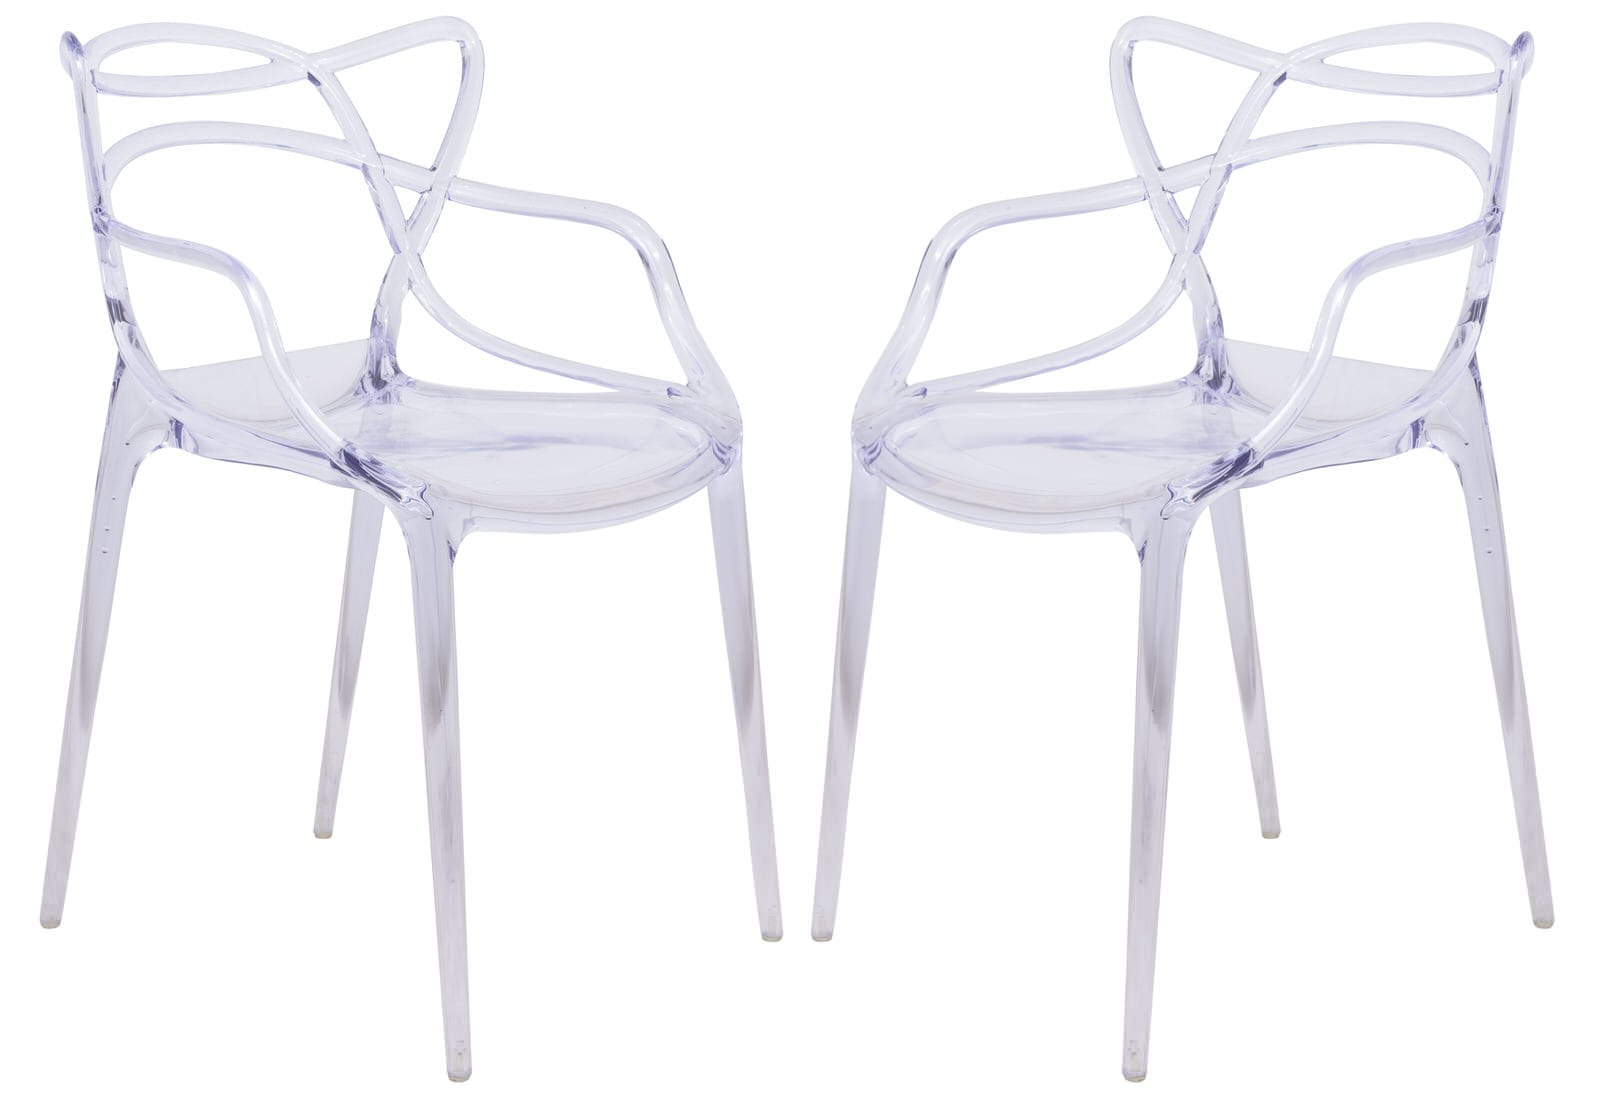 Plastic Clear Chair Milan Modern Wire Design Clear Chair Set Of 2 By Leisuremod